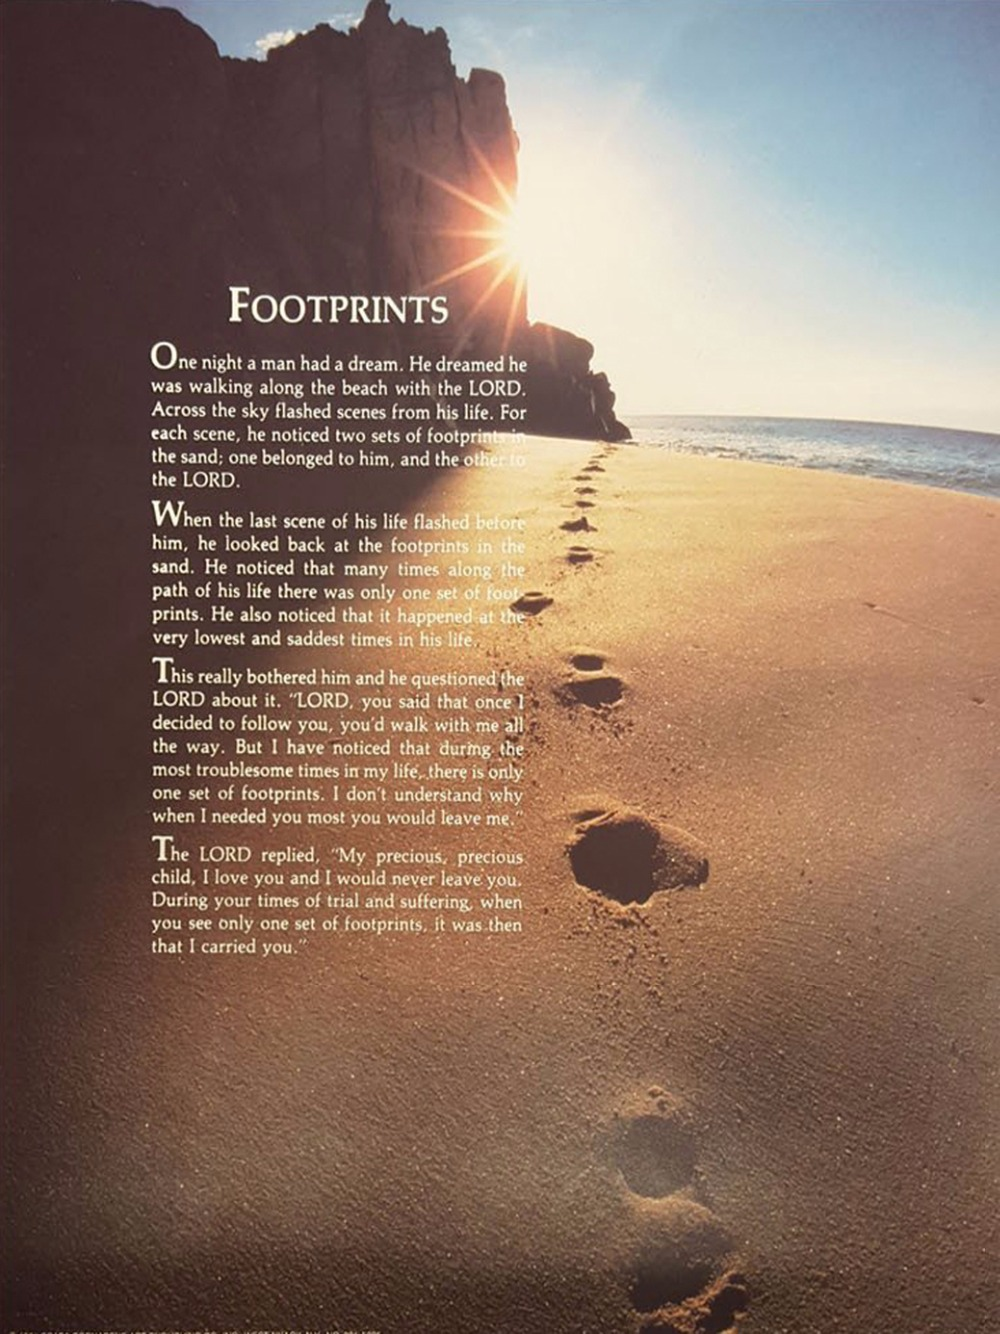 Inspirational Footprints Poem in the Sand Art Fabric poster 17x13Decor 03 image